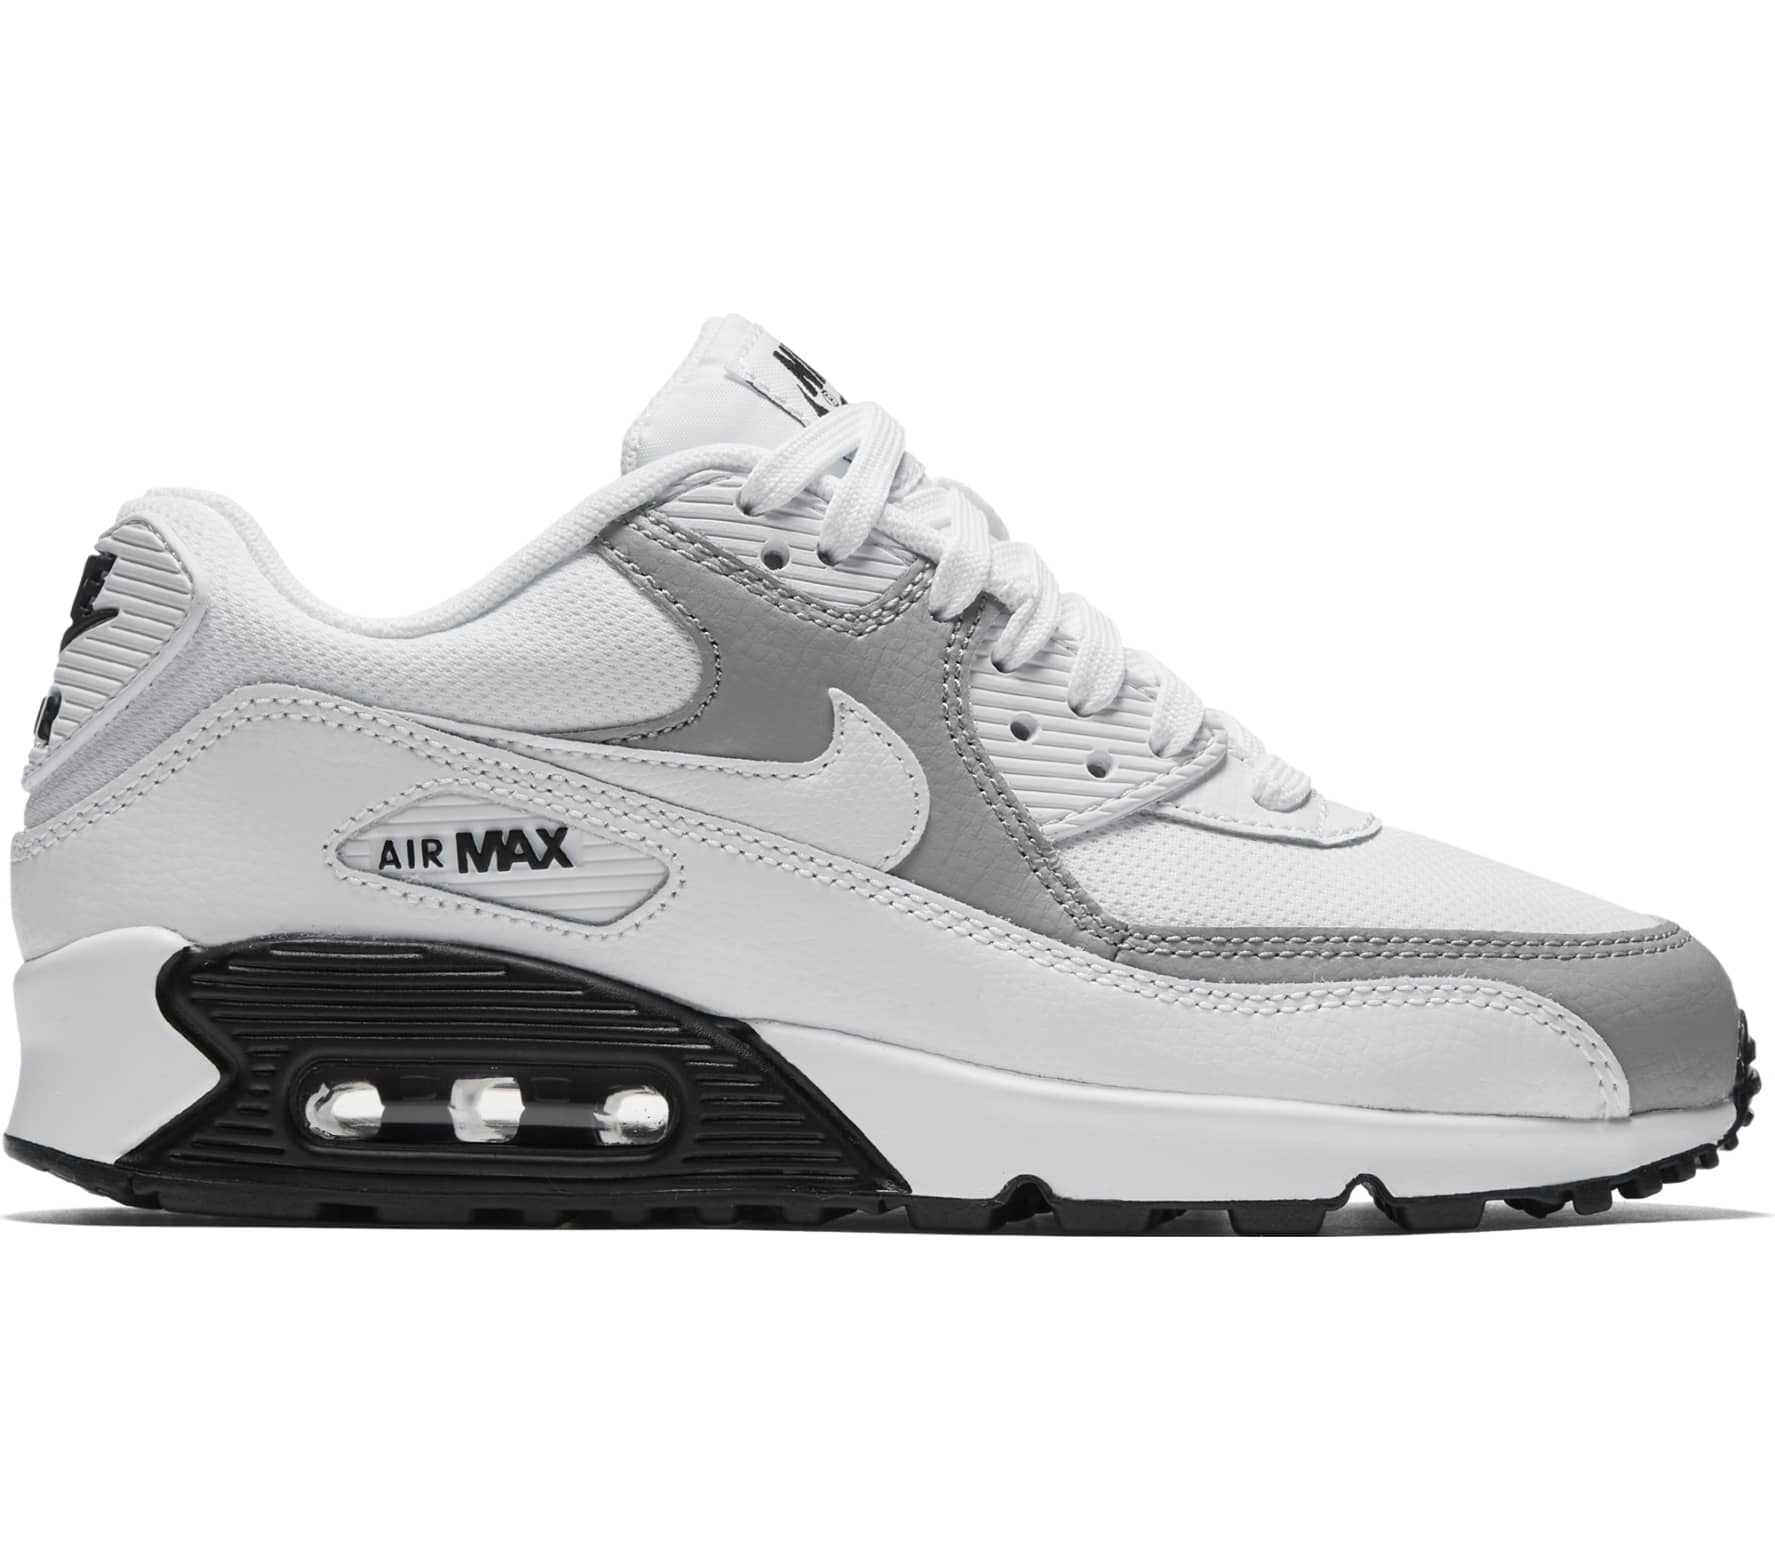 on sale f5eff 0fb5a ... discount code for nike air max 90 mujer zapatilla de deporte blanco  gris 86759 58397